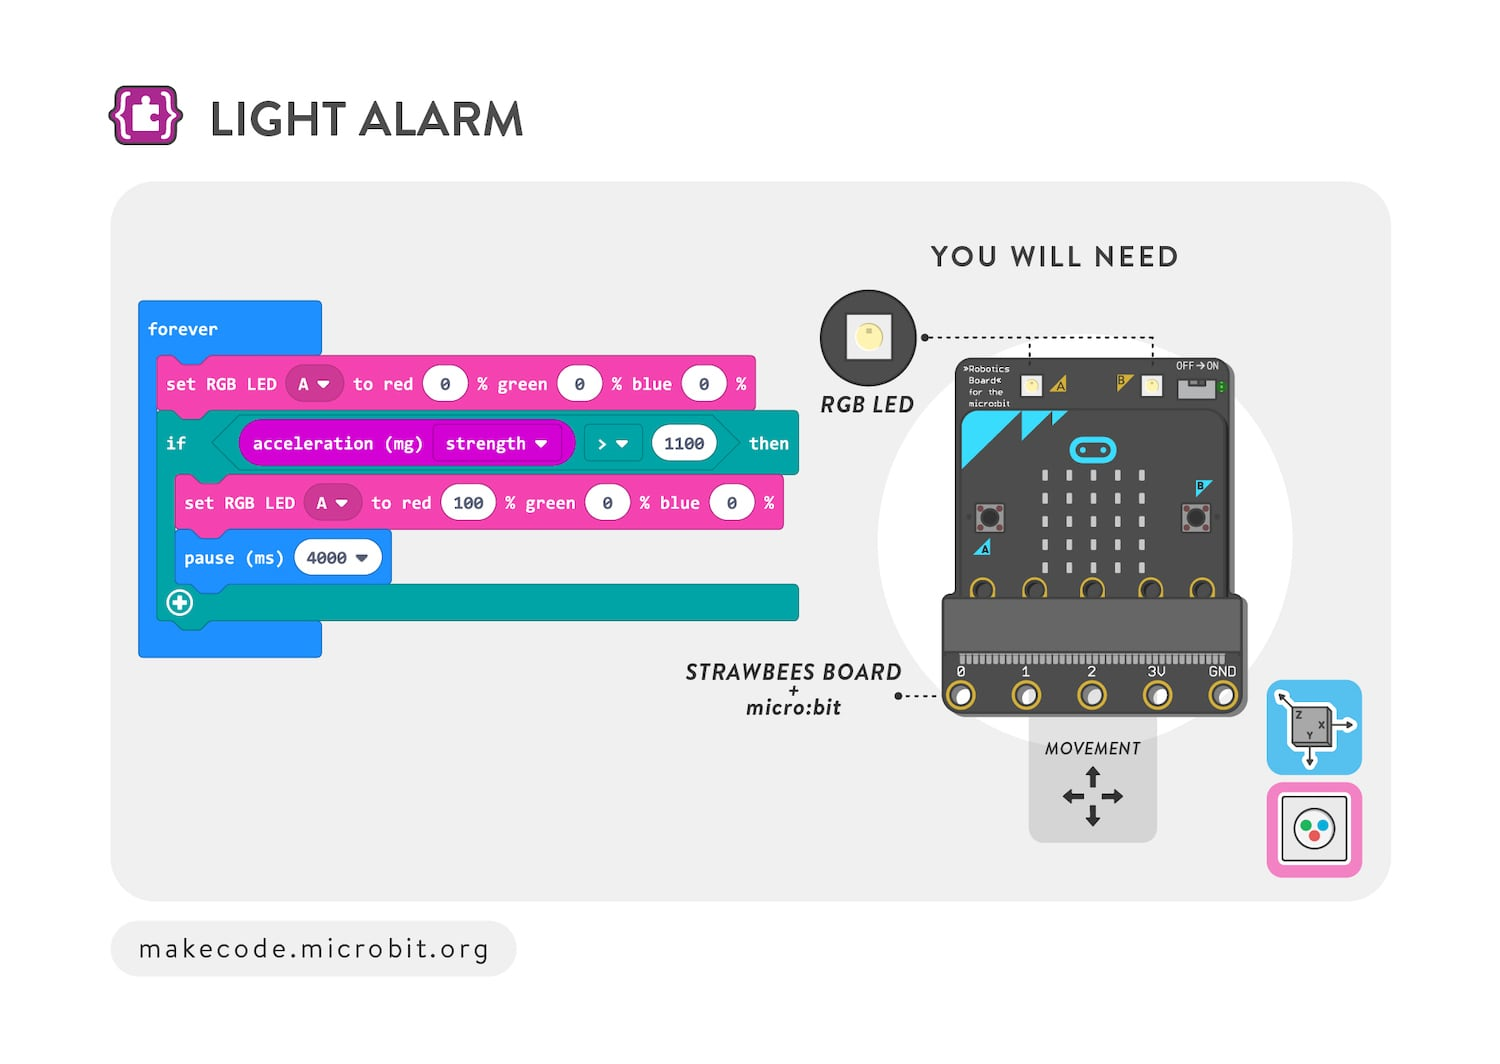 Light alarm